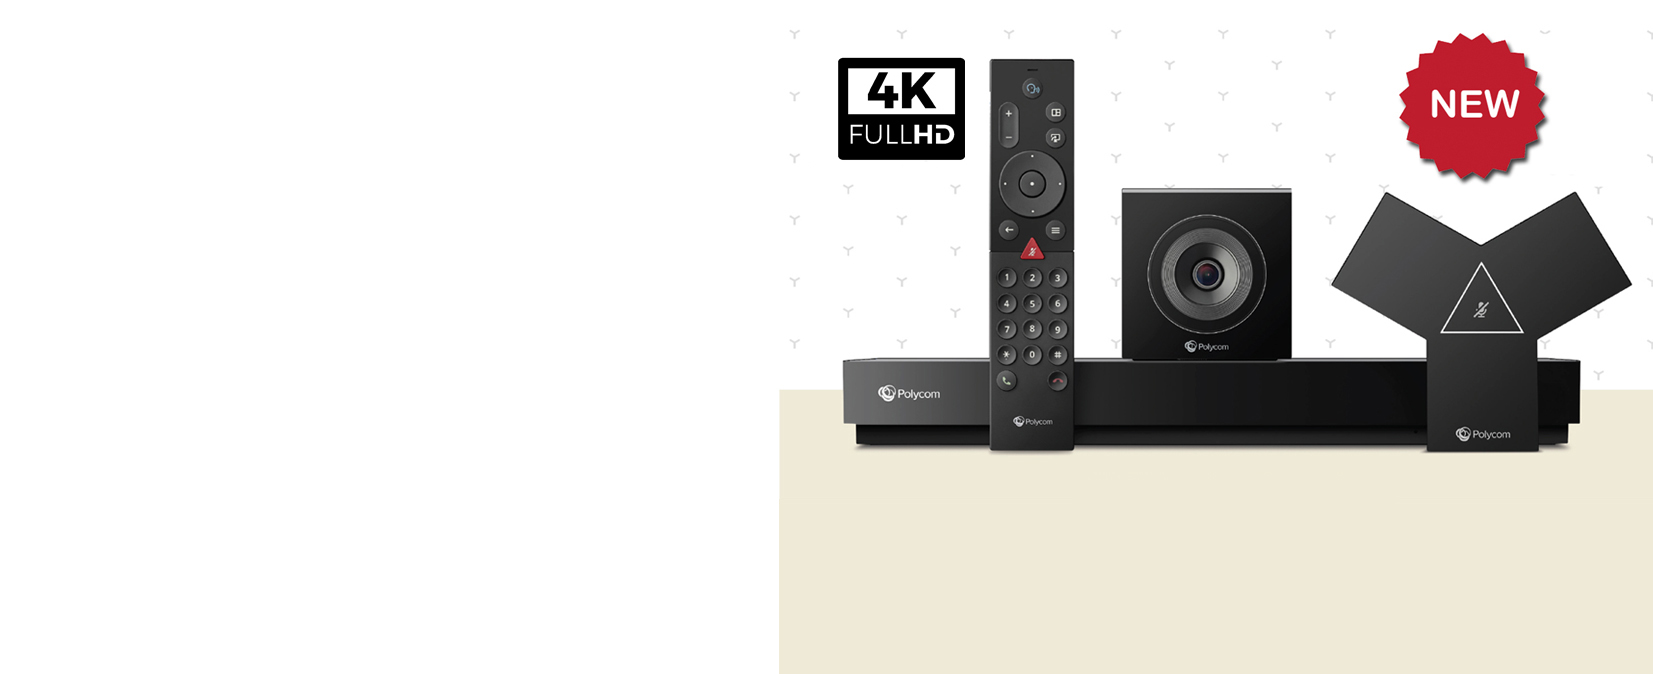 The new Poly G7500 Video Conferencing and Collaboration System